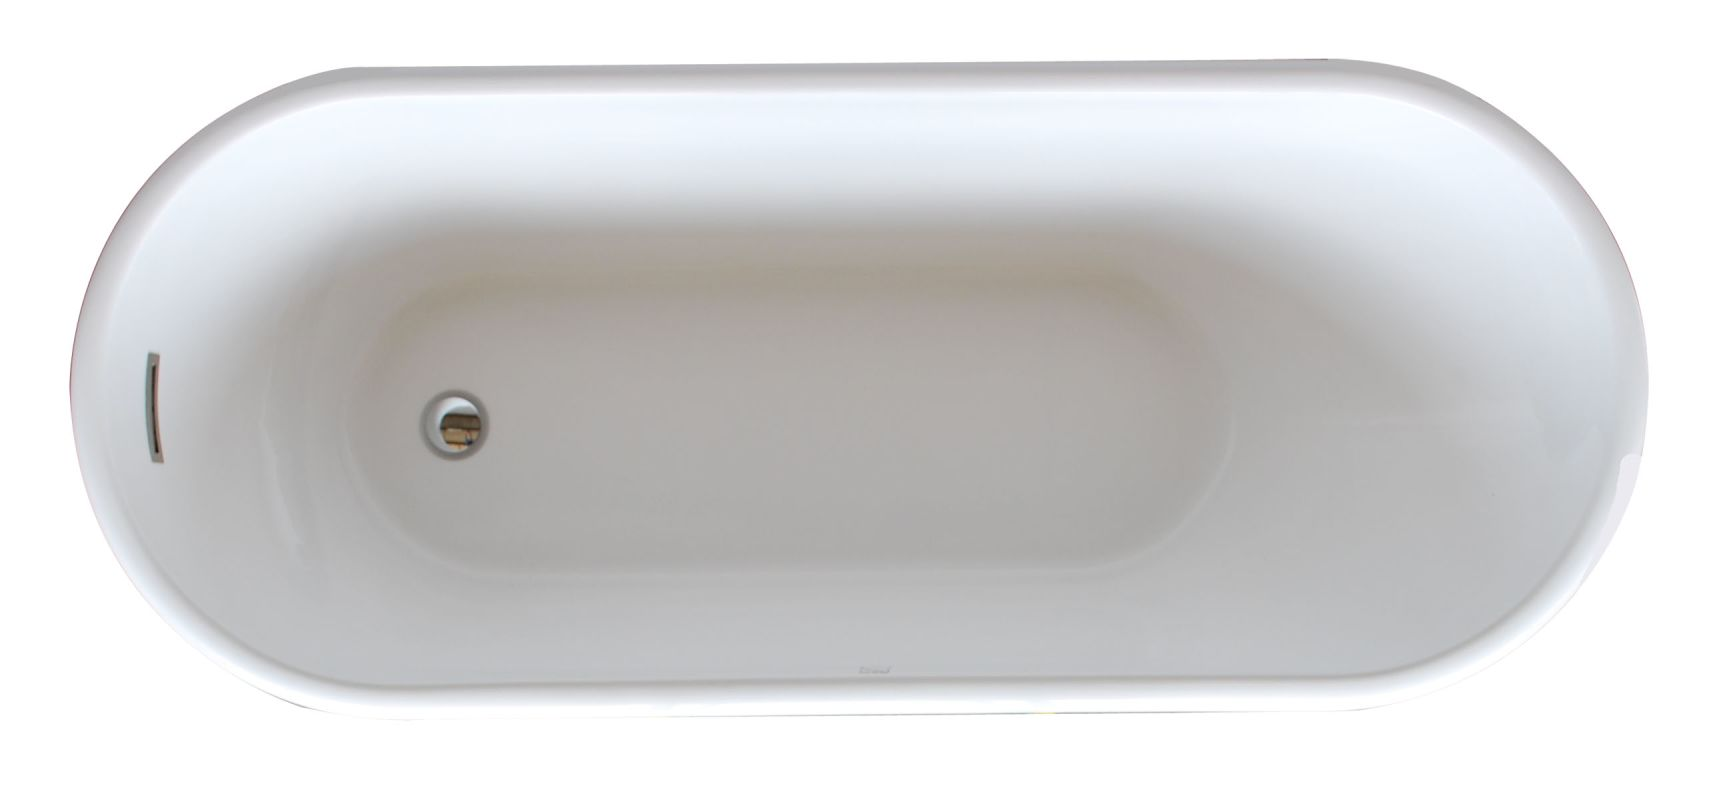 Faucet Com Av6728ensxcwxx In White By Avano